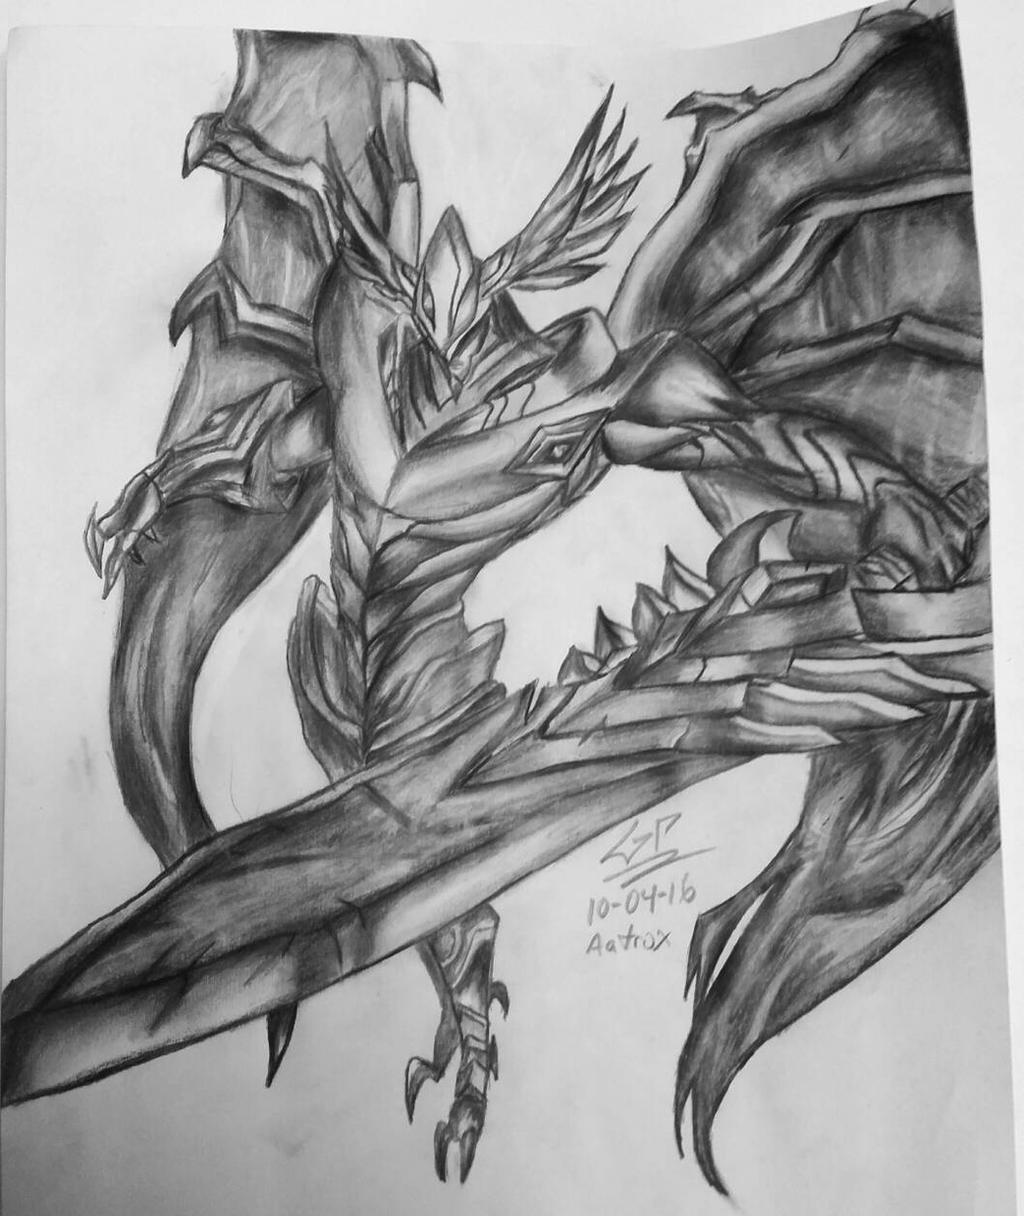 Aatrox League Of Legends Drawing By Anali218 On Deviantart It's usually the case that if you're a fan of a video game and want to check out its concept art, you. aatrox league of legends drawing by